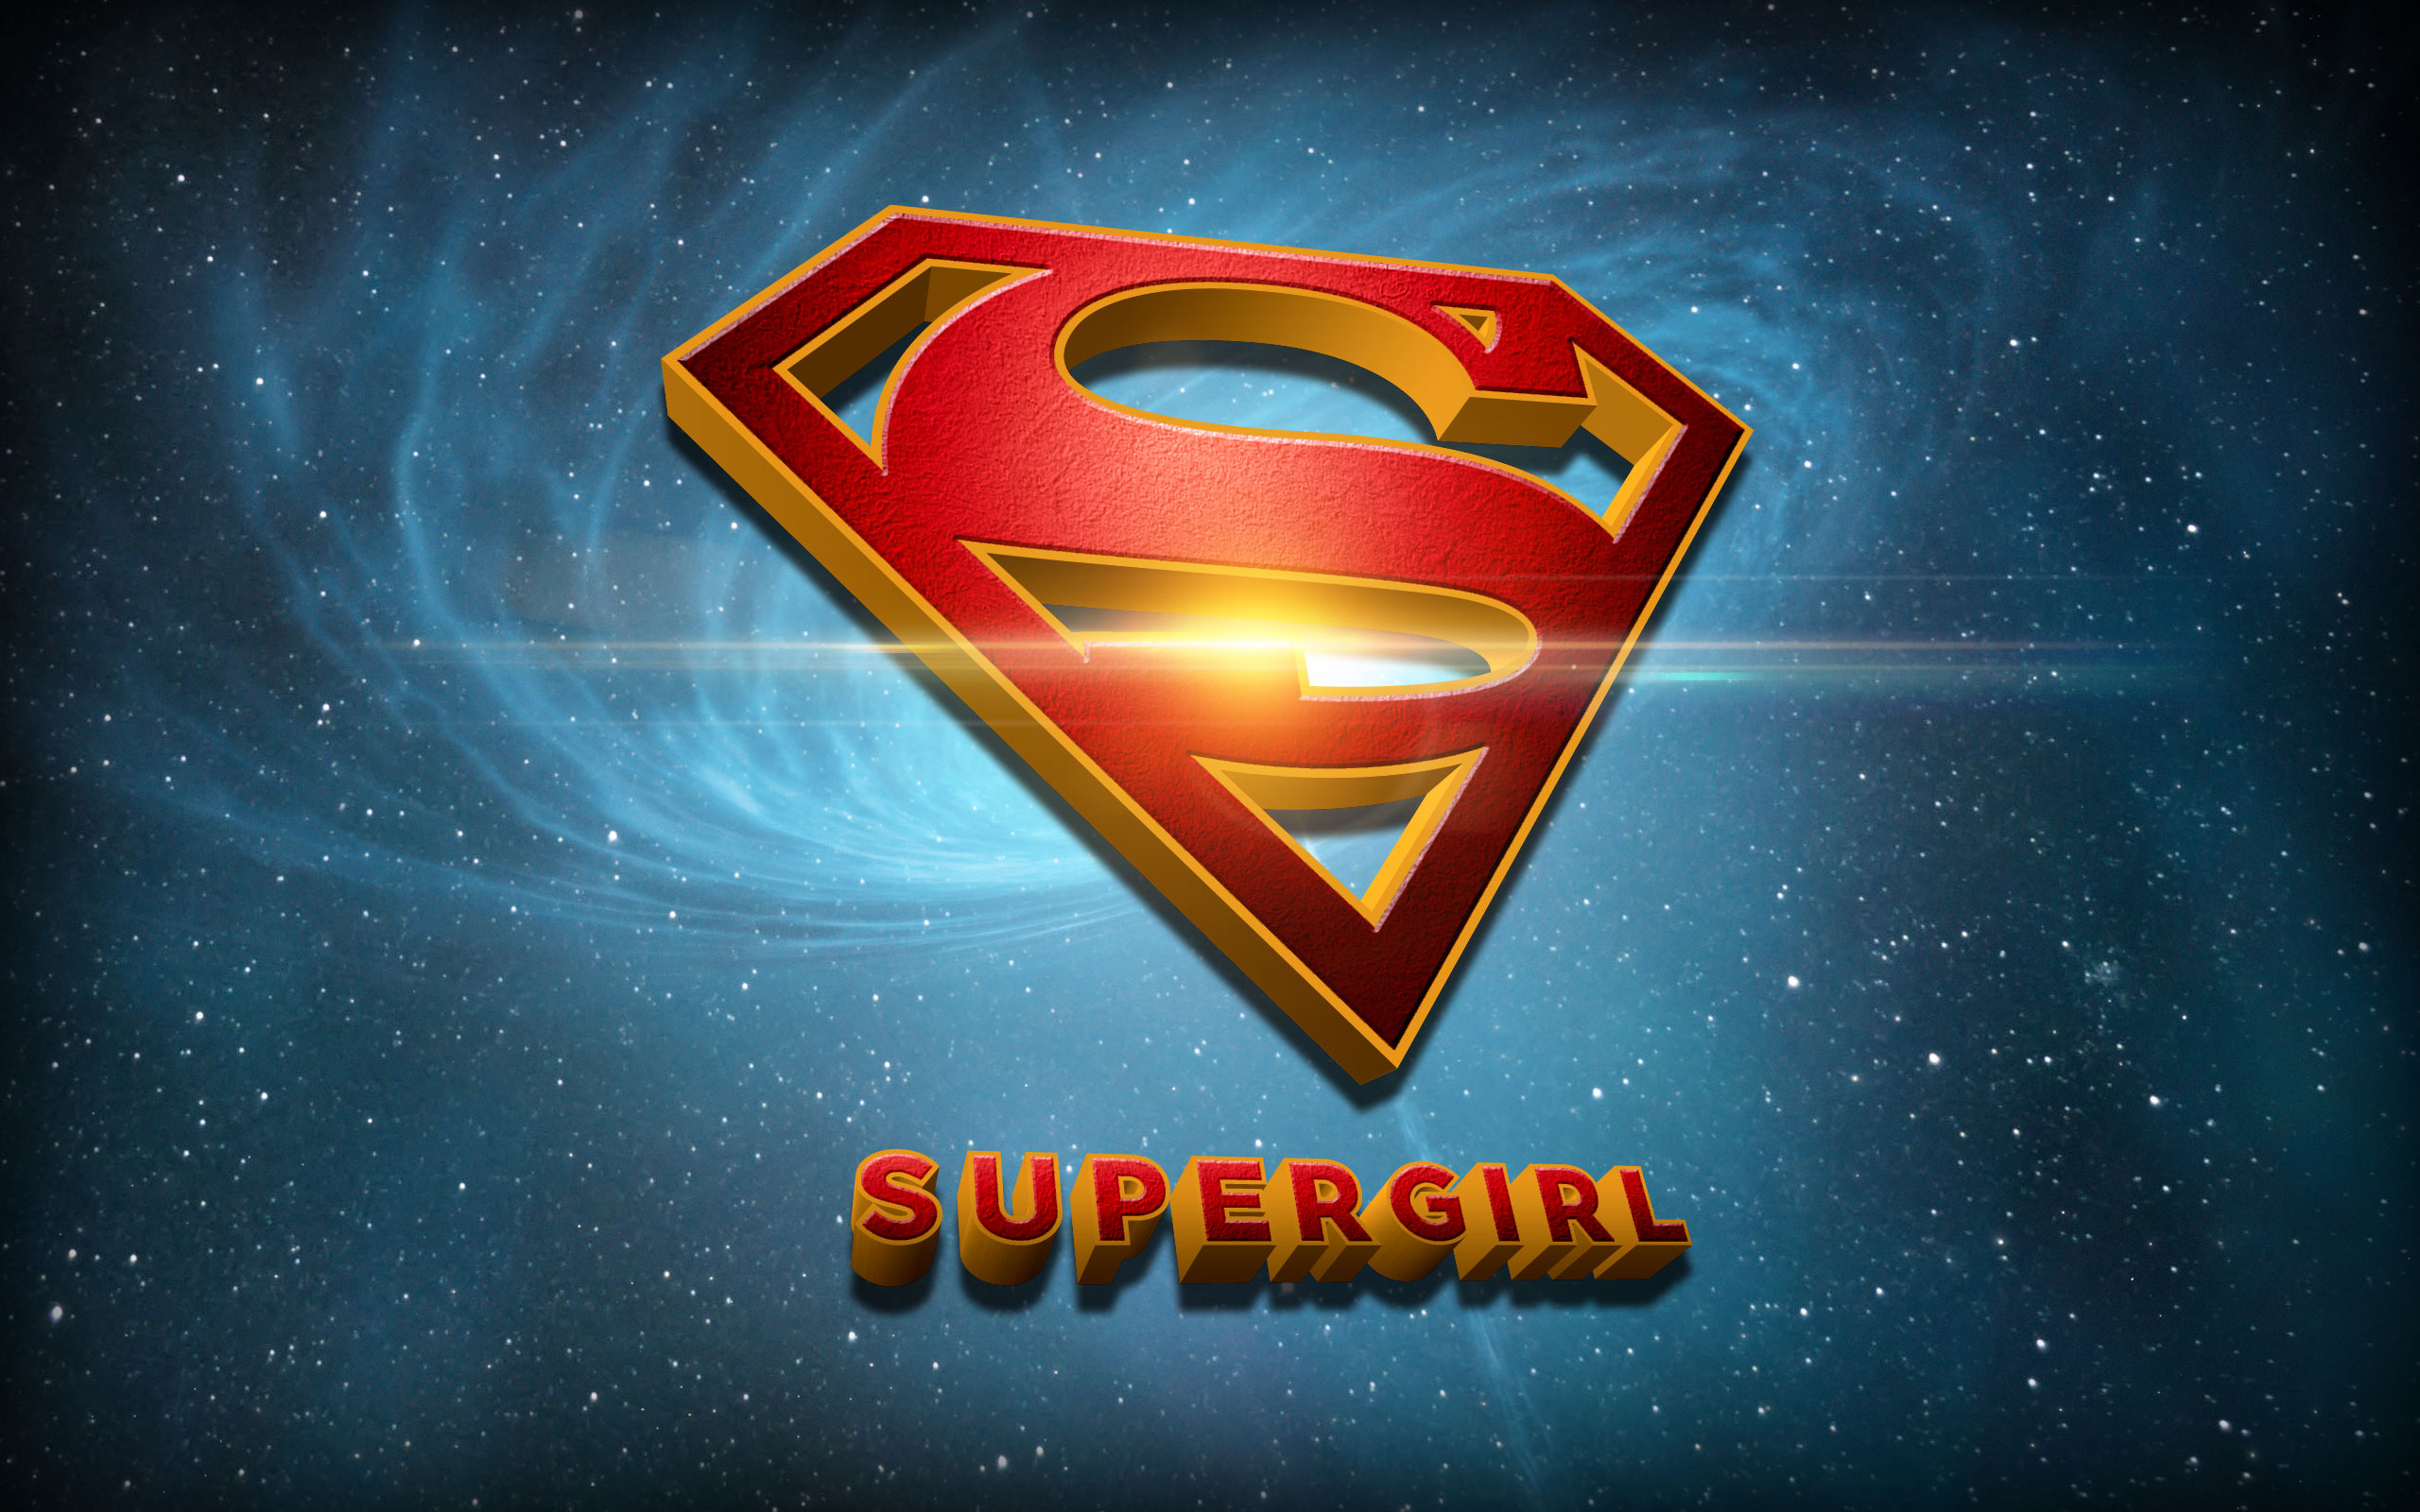 Supergirl TV Wallpapers High Resolution and Quality Download 2560x1600